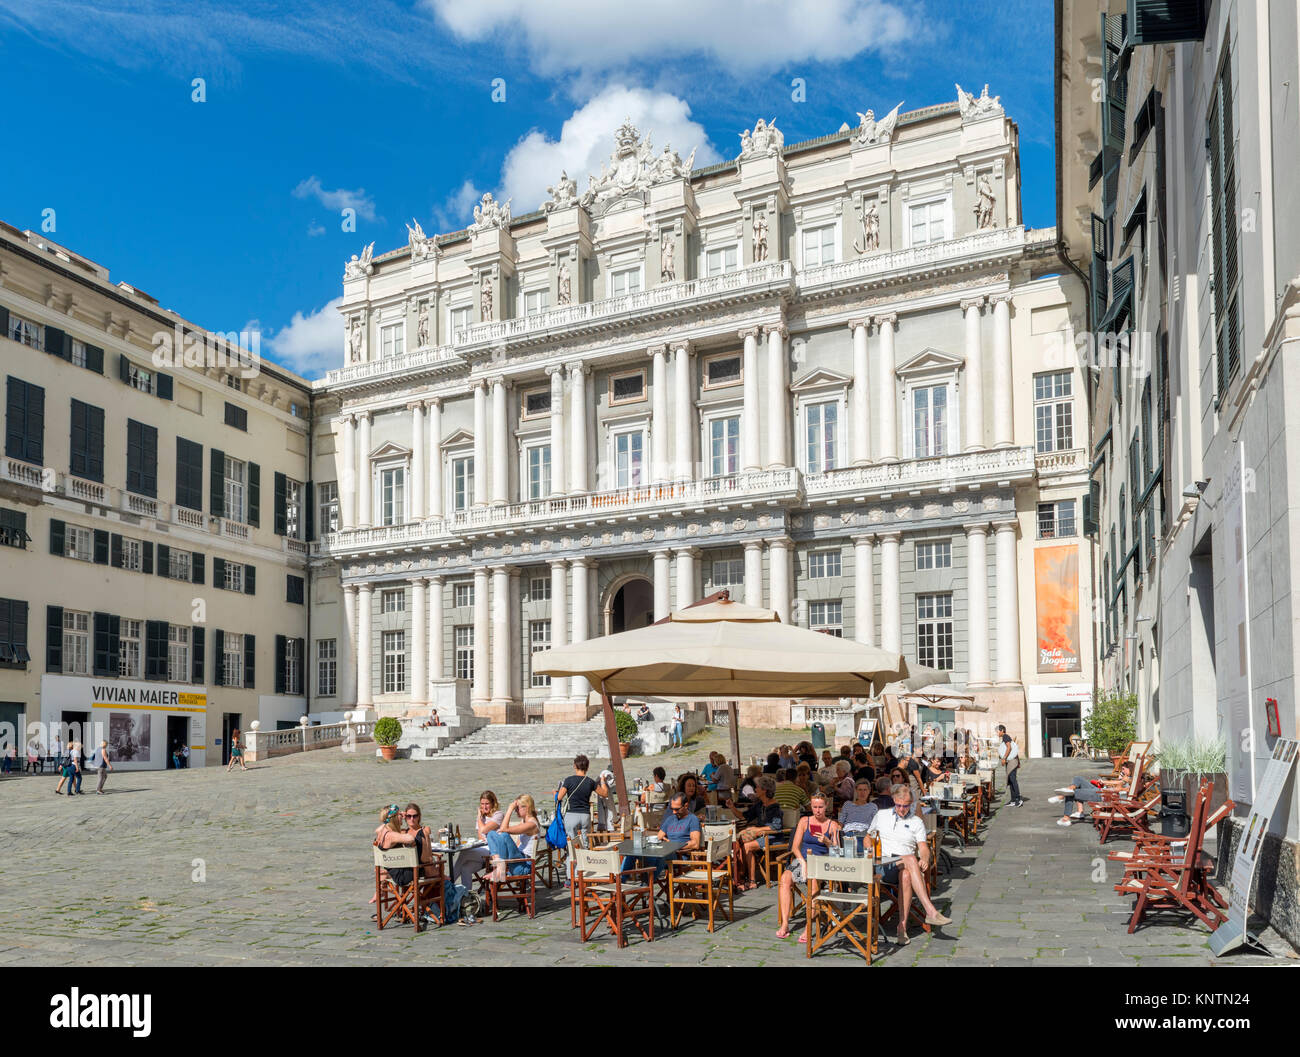 Sidewalk cafe in front of the 16th century Doge's Palace (Palazzo Ducale), Piazza Matteotti, Genoa, Liguria, - Stock Image